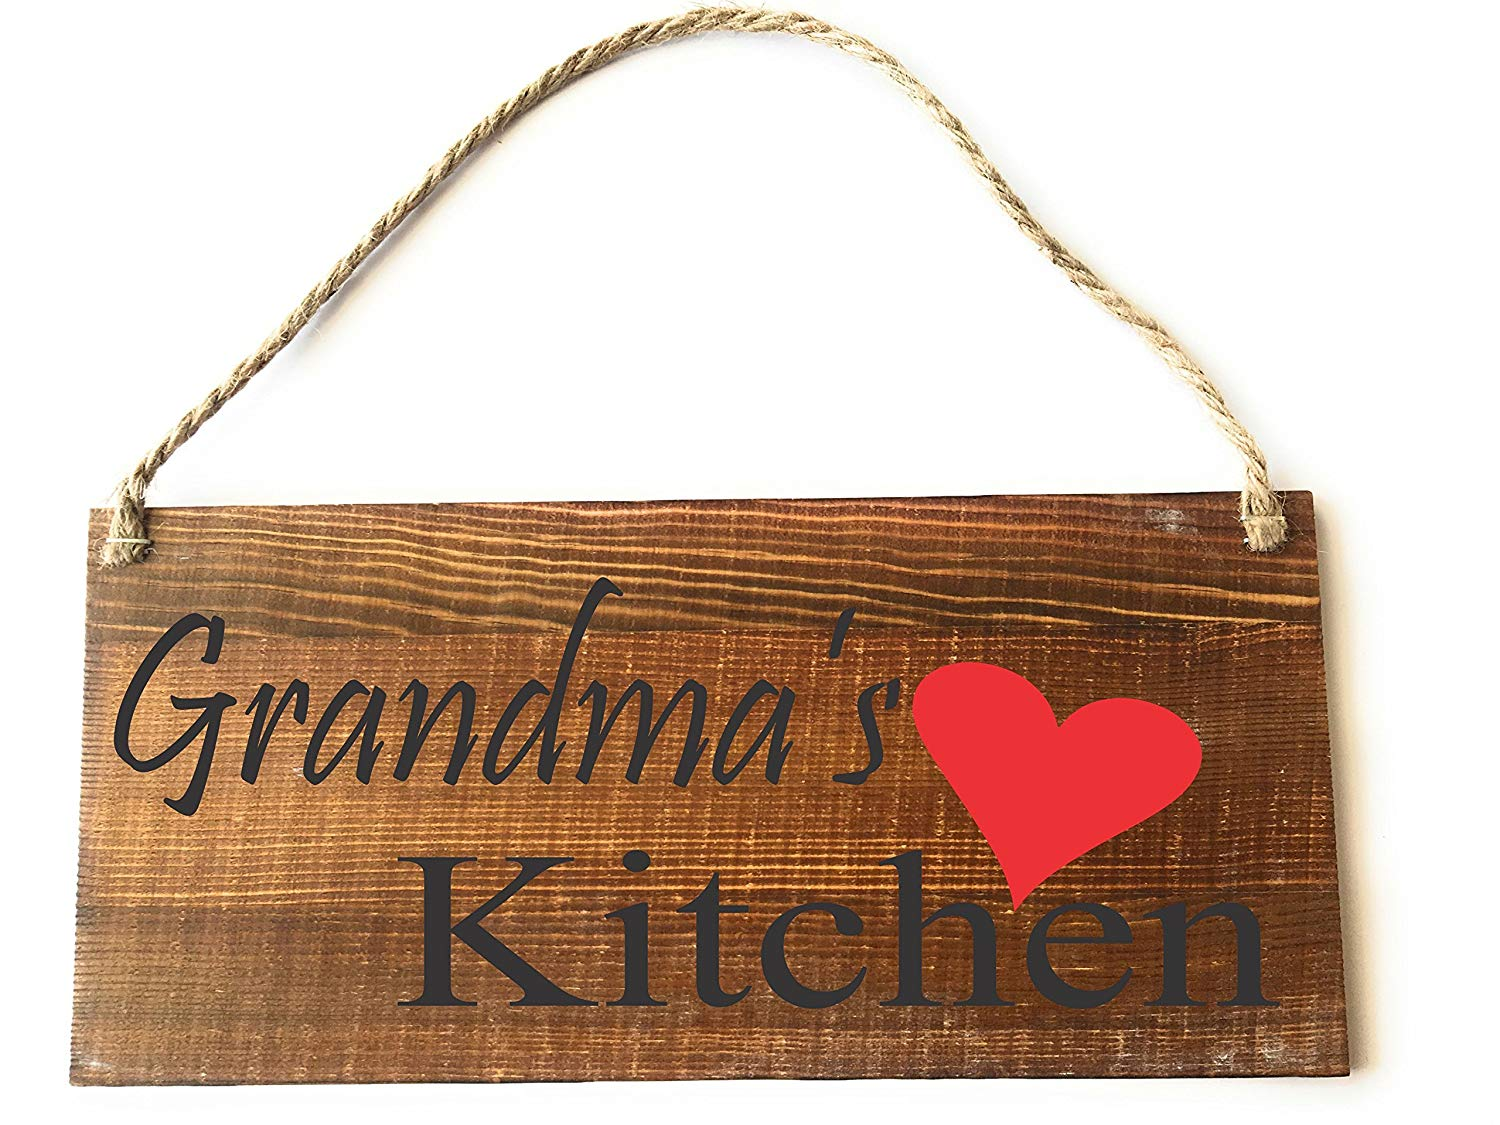 CUSTOM HANDMADE PERSONALIZED SIGNS, GRANDMA'S KITCHEN, RUSTIC, COUNTRY WOODEN SIGN, BIRTHDAY GIFT, MOTHER'S DAY GIFT, by Heartland Country Decor